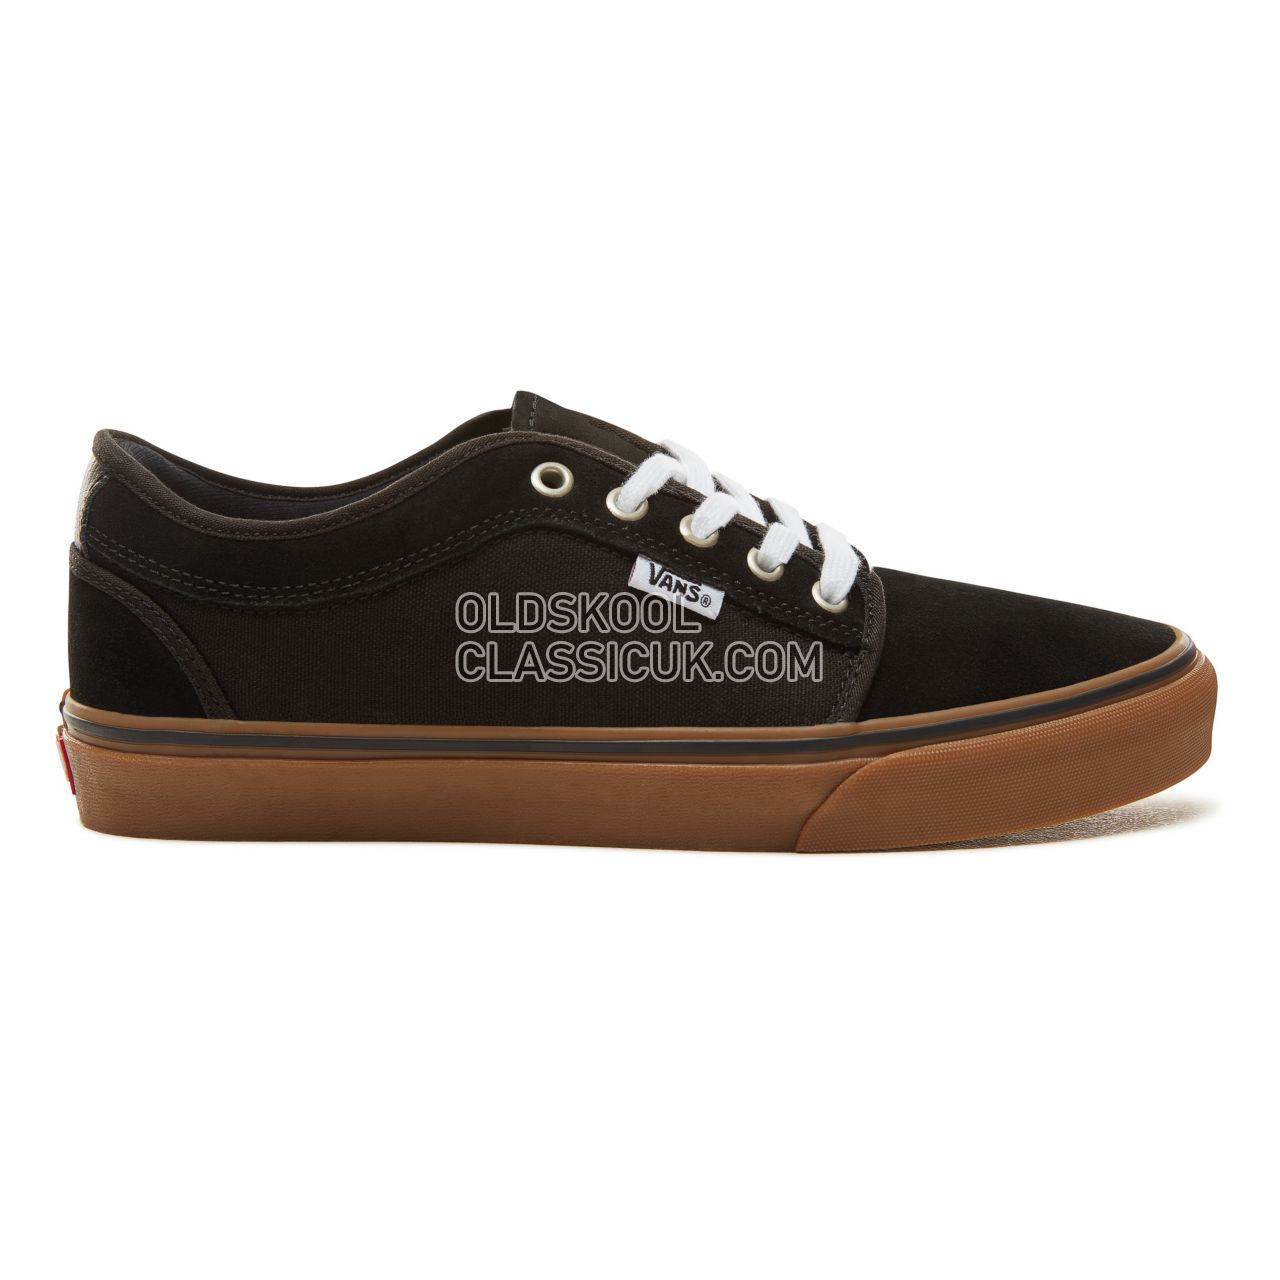 Vans Chukka Low Sneakers Mens Black-Gum VA38CG0I4 Shoes